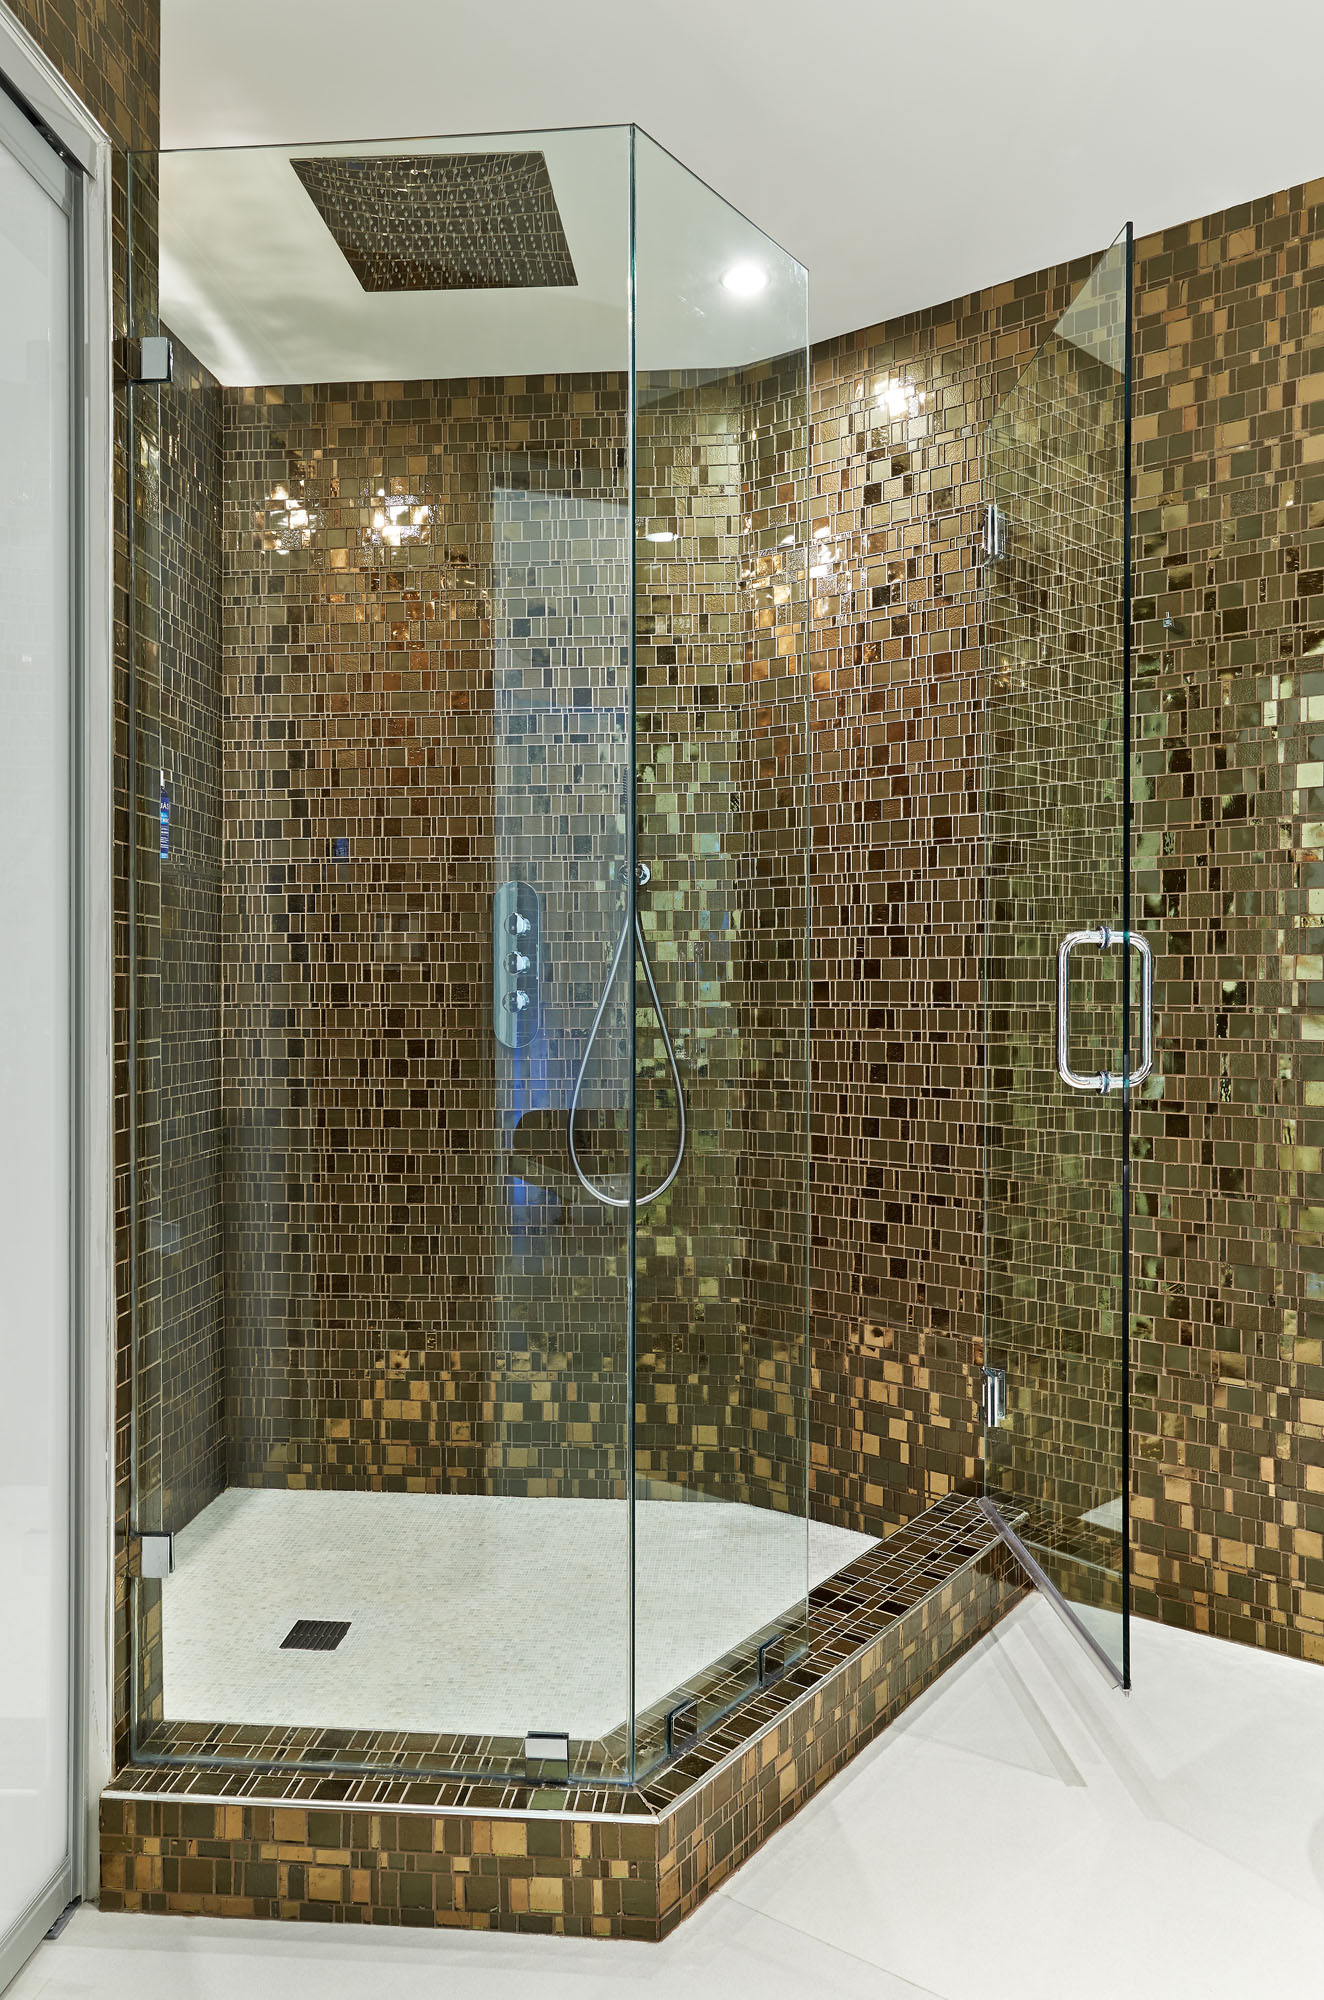 unique bathroom tiles designs 21 unique bathroom tile designs ideas and pictures 21159